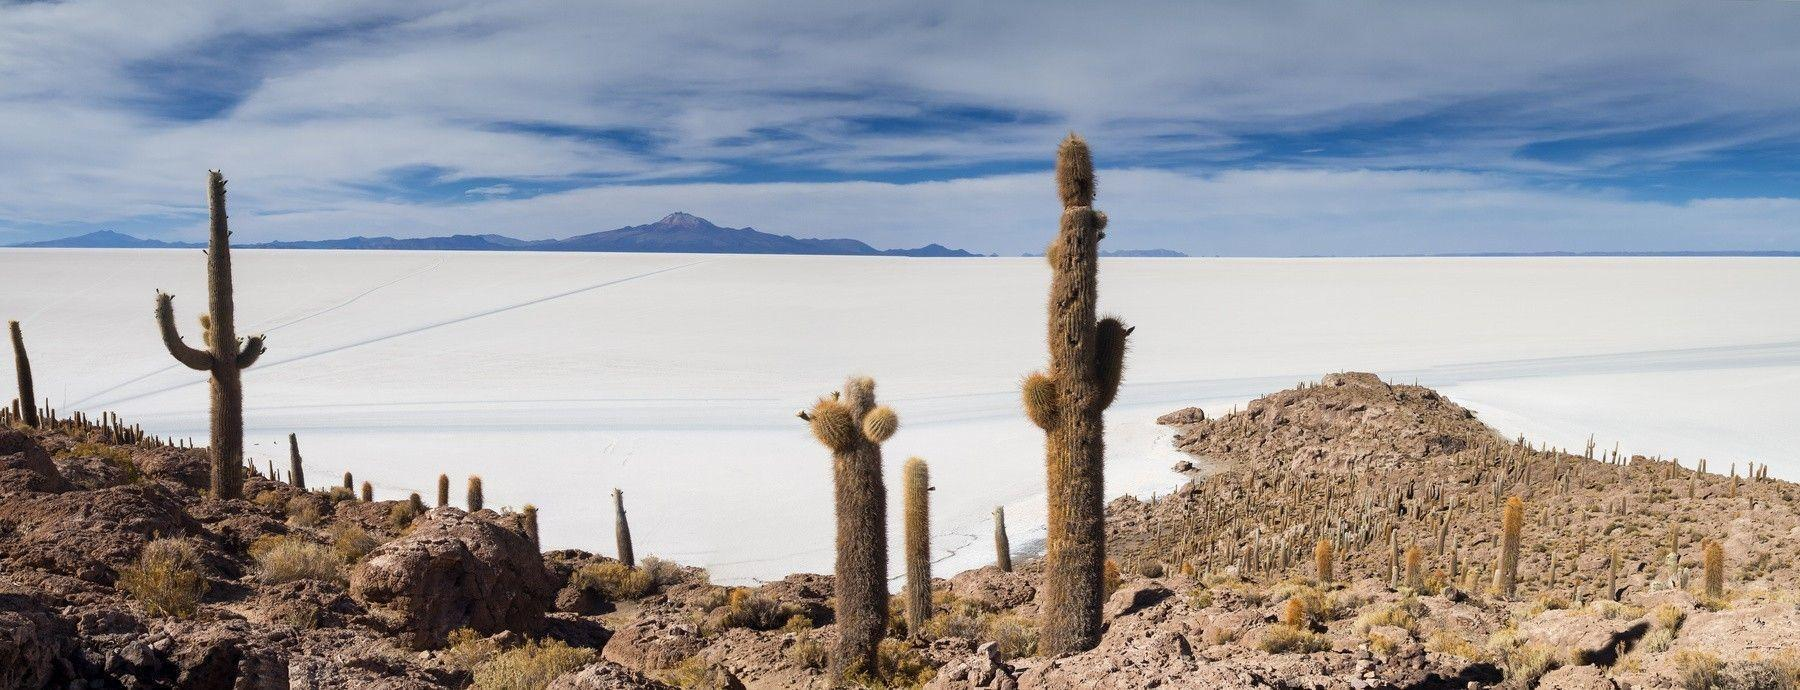 bolivie-panorama-uyuni